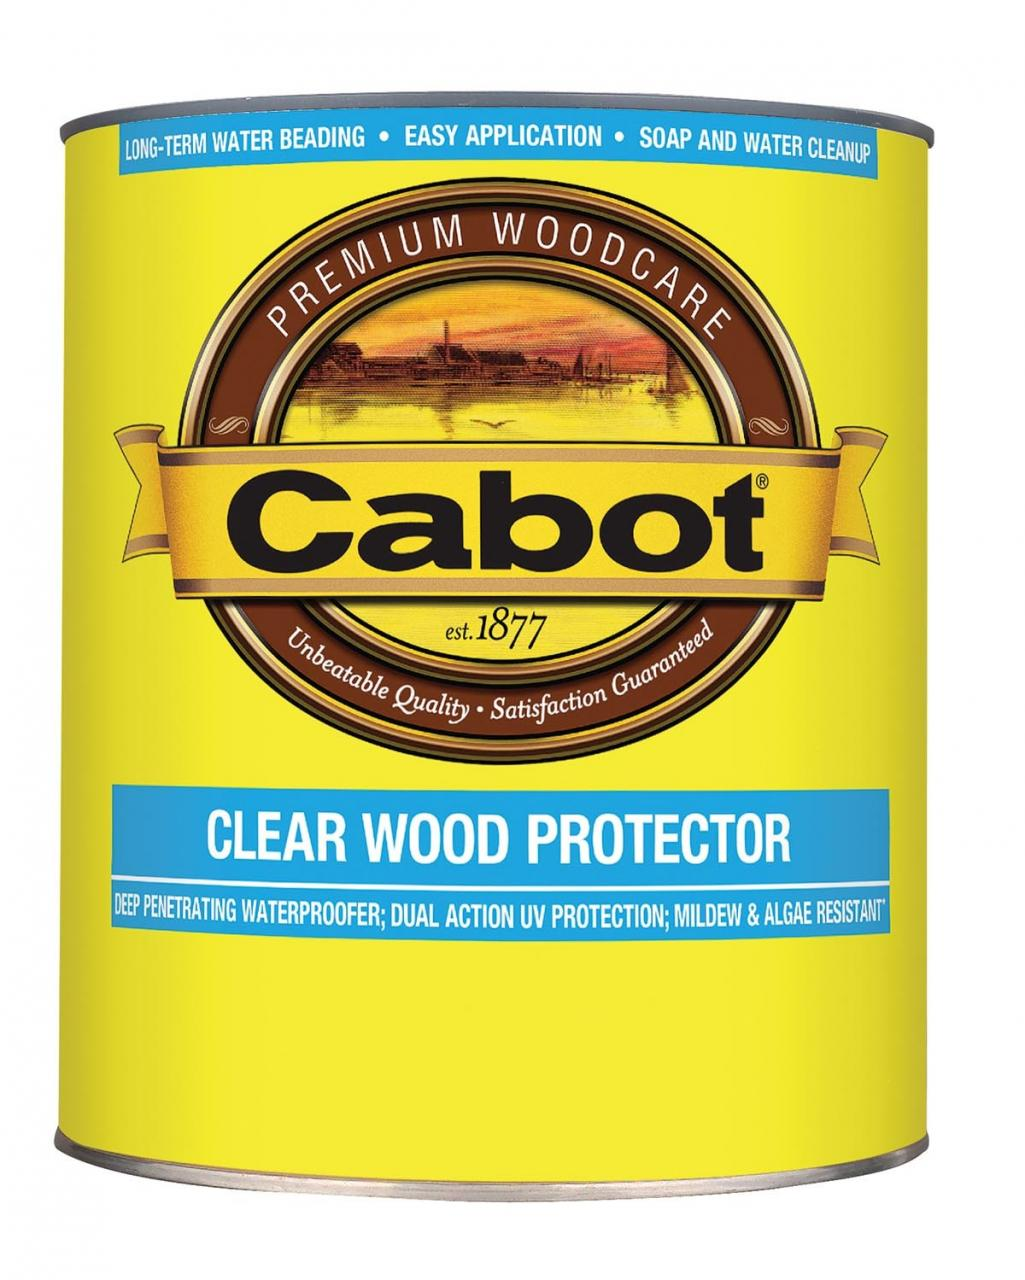 Cabot Clear Wood Protector